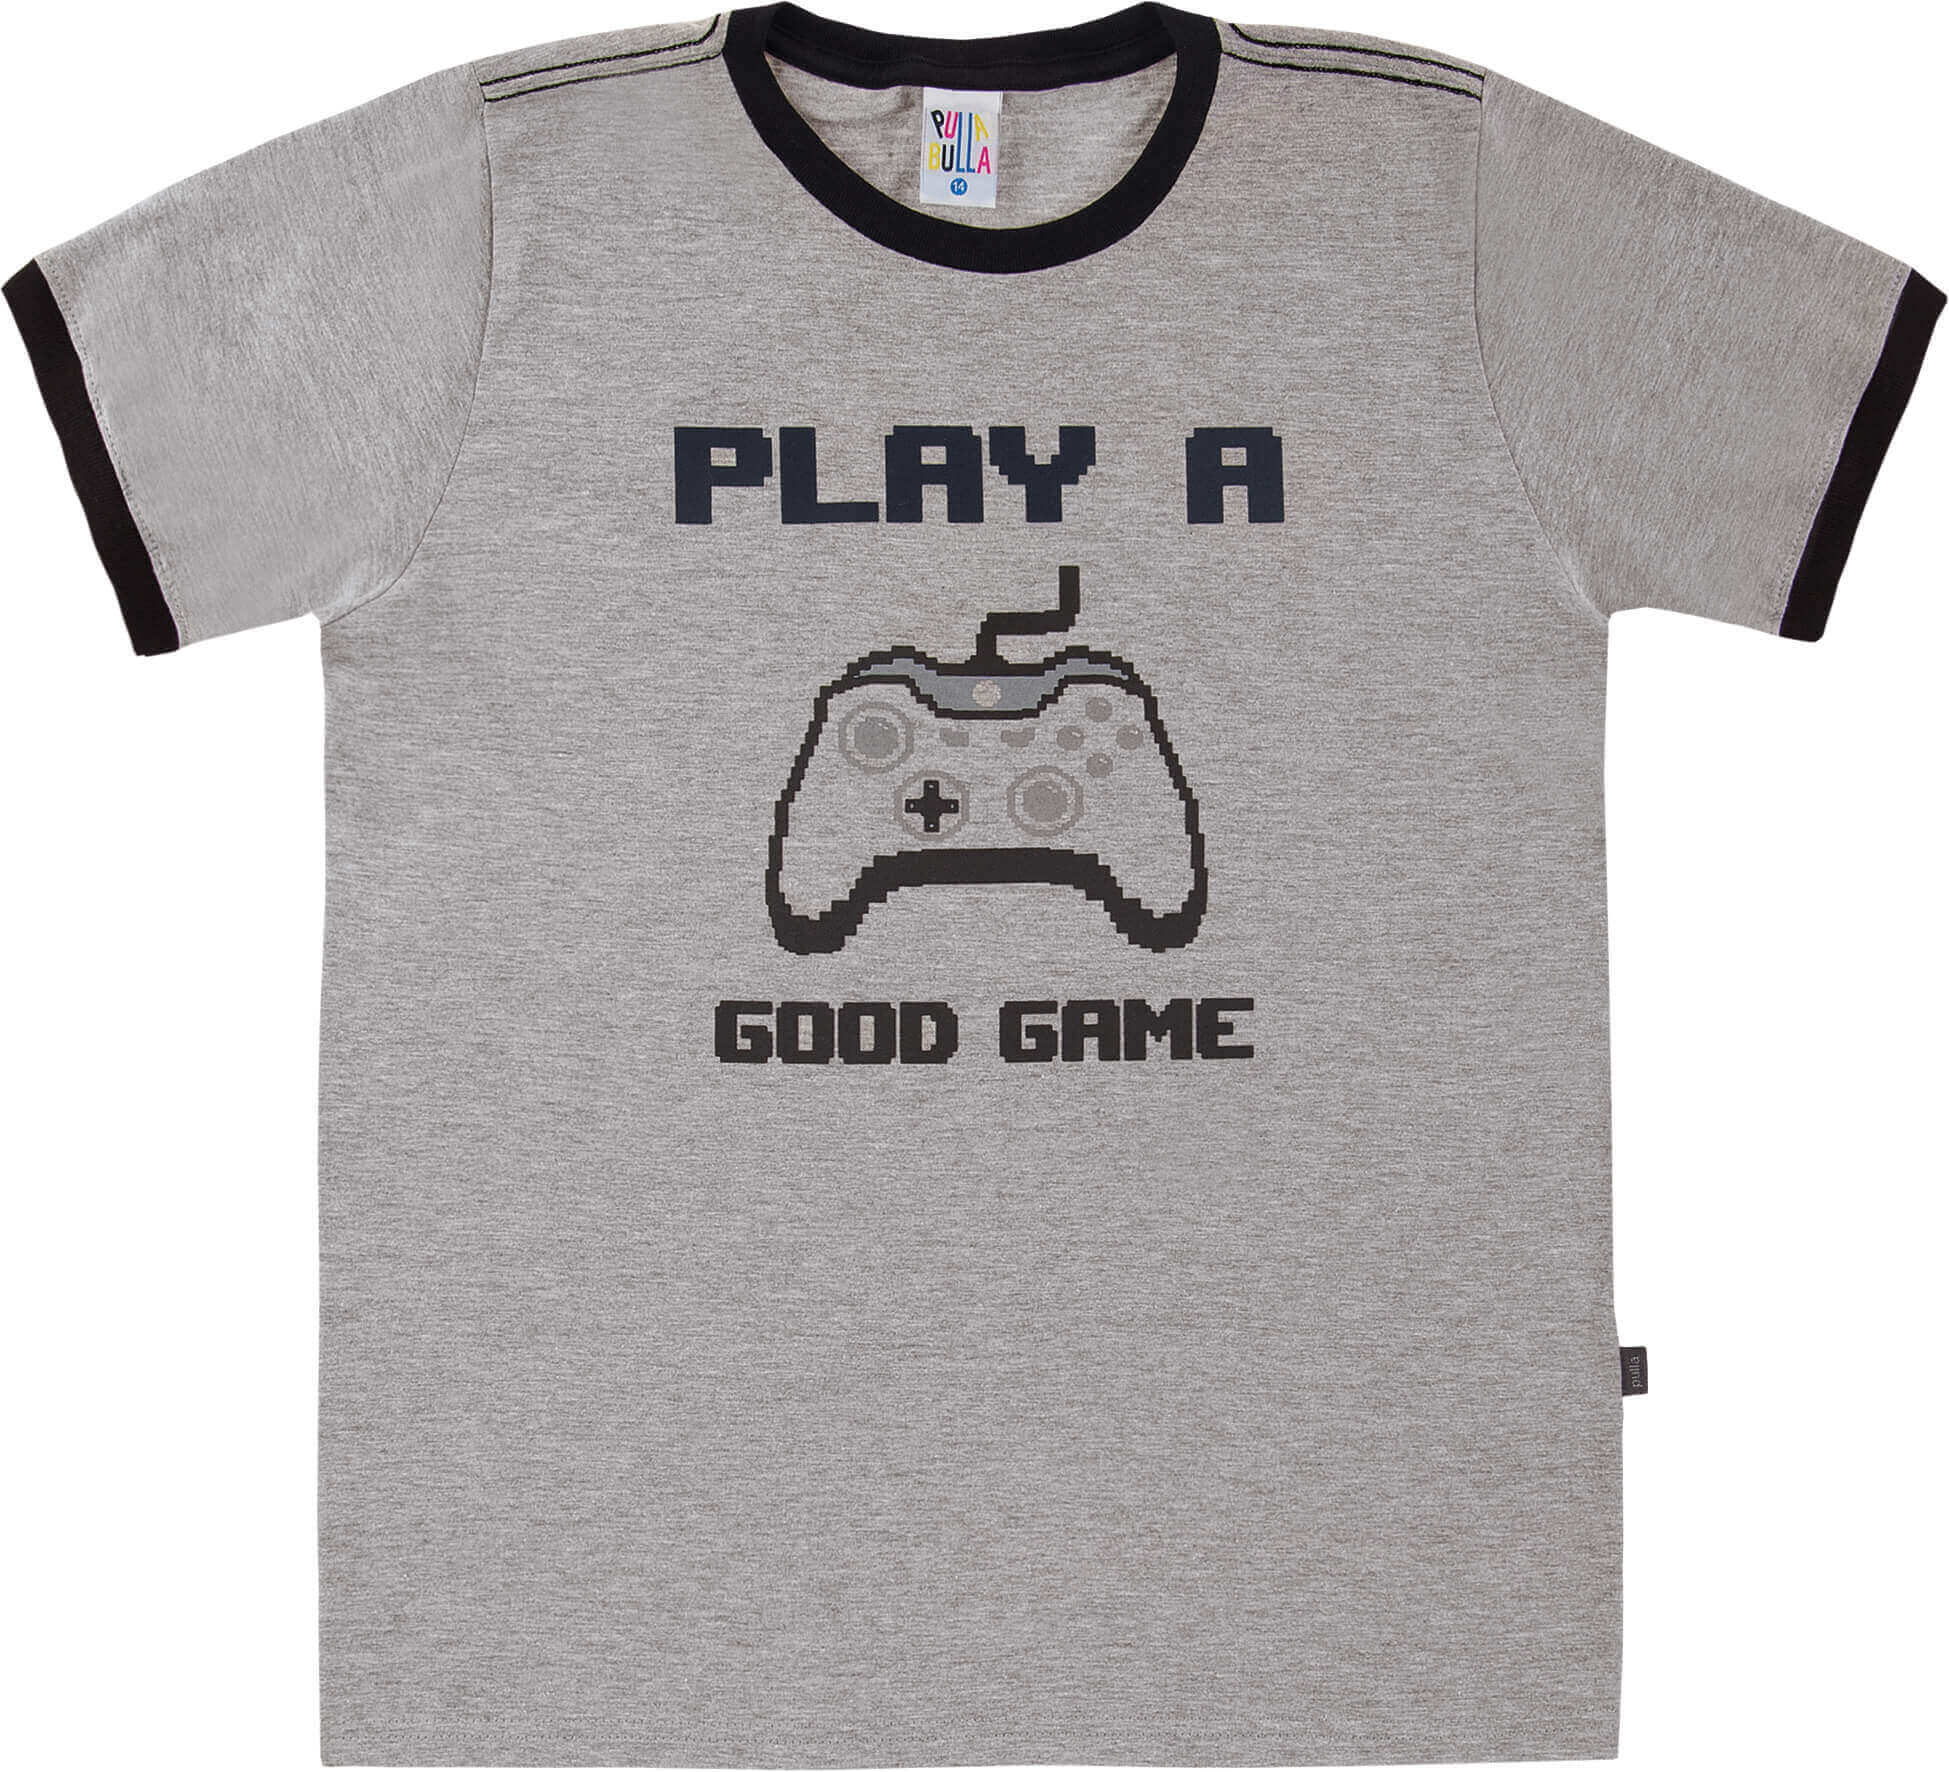 Camiseta  Pulla Bulla Good Games Cinza